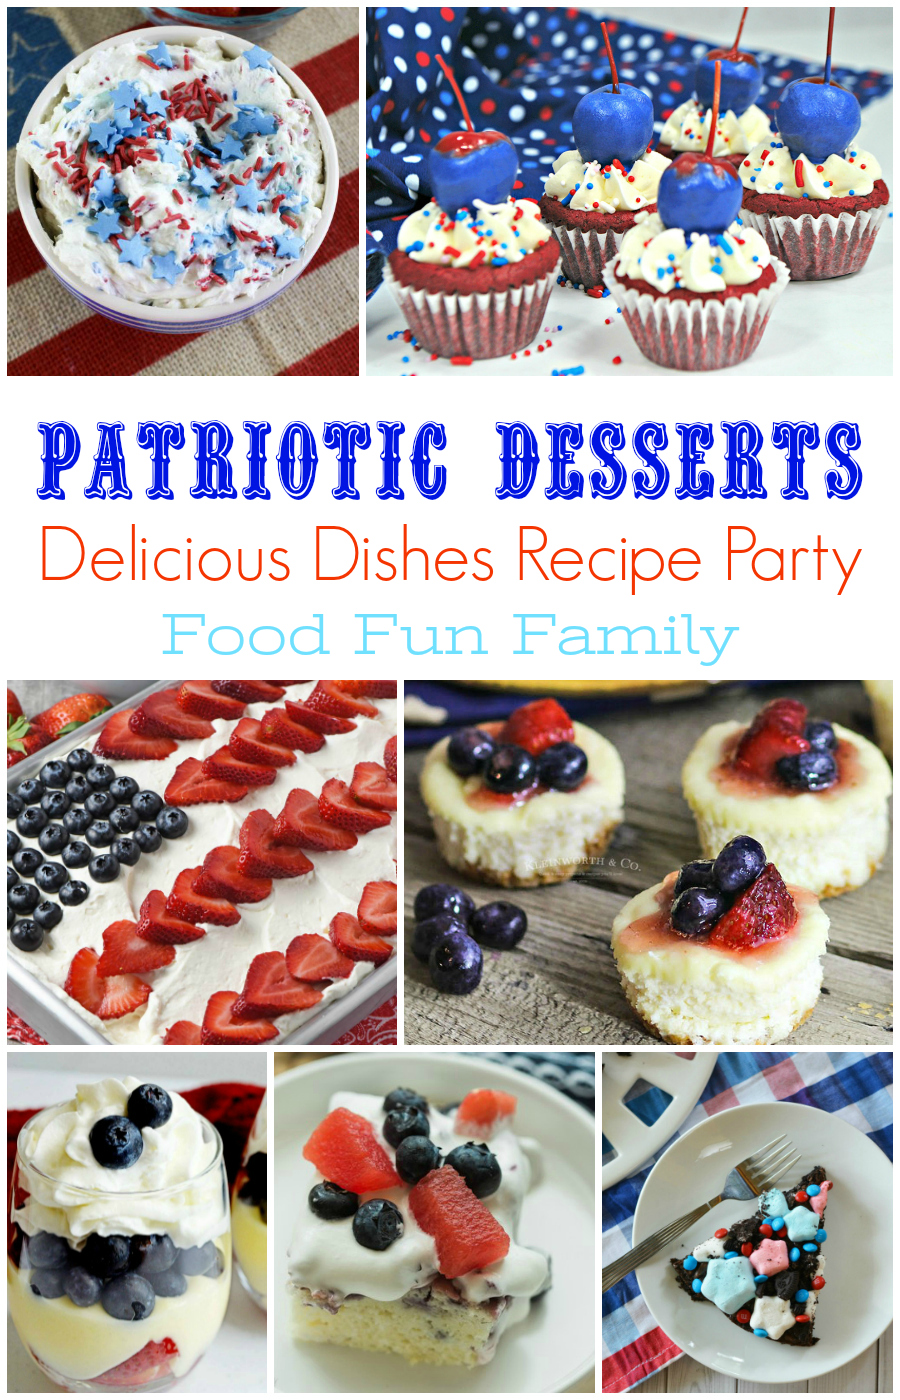 Patriotic Desserts - sweet treats in red, white, and blue! A Delicious Dishes Recipe Party with Food Fun Family